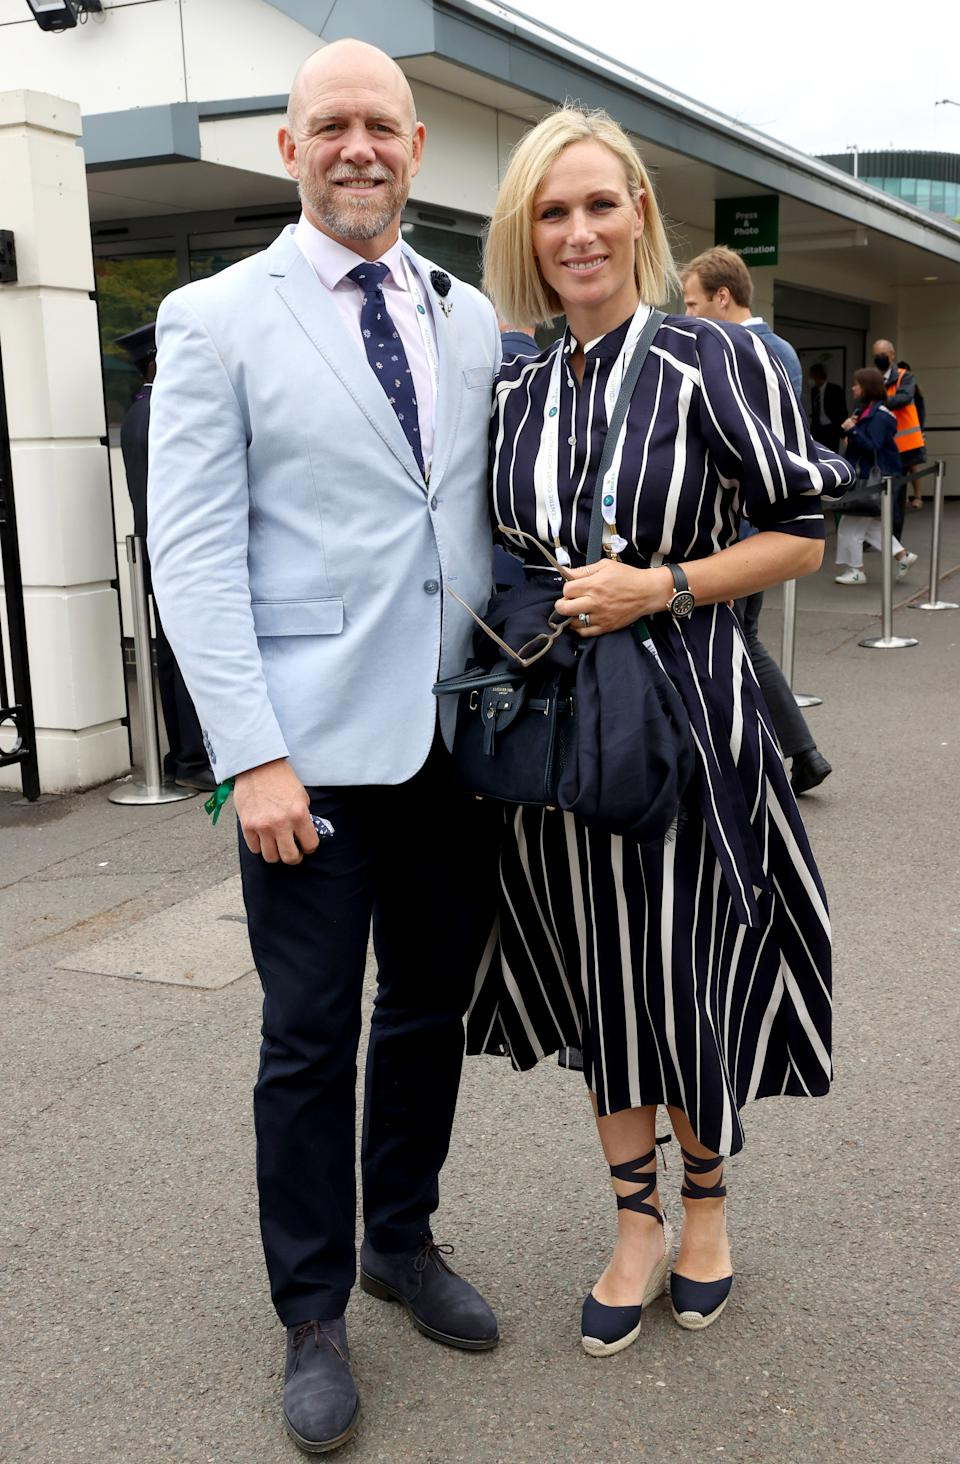 LONDON, ENGLAND - JULY 07: Mike Tindall and Zara Tindall attend Wimbledon Championships Tennis Tournament at All England Lawn Tennis and Croquet Club on July 07, 2021 in London, England. (Photo by Karwai Tang/WireImage)